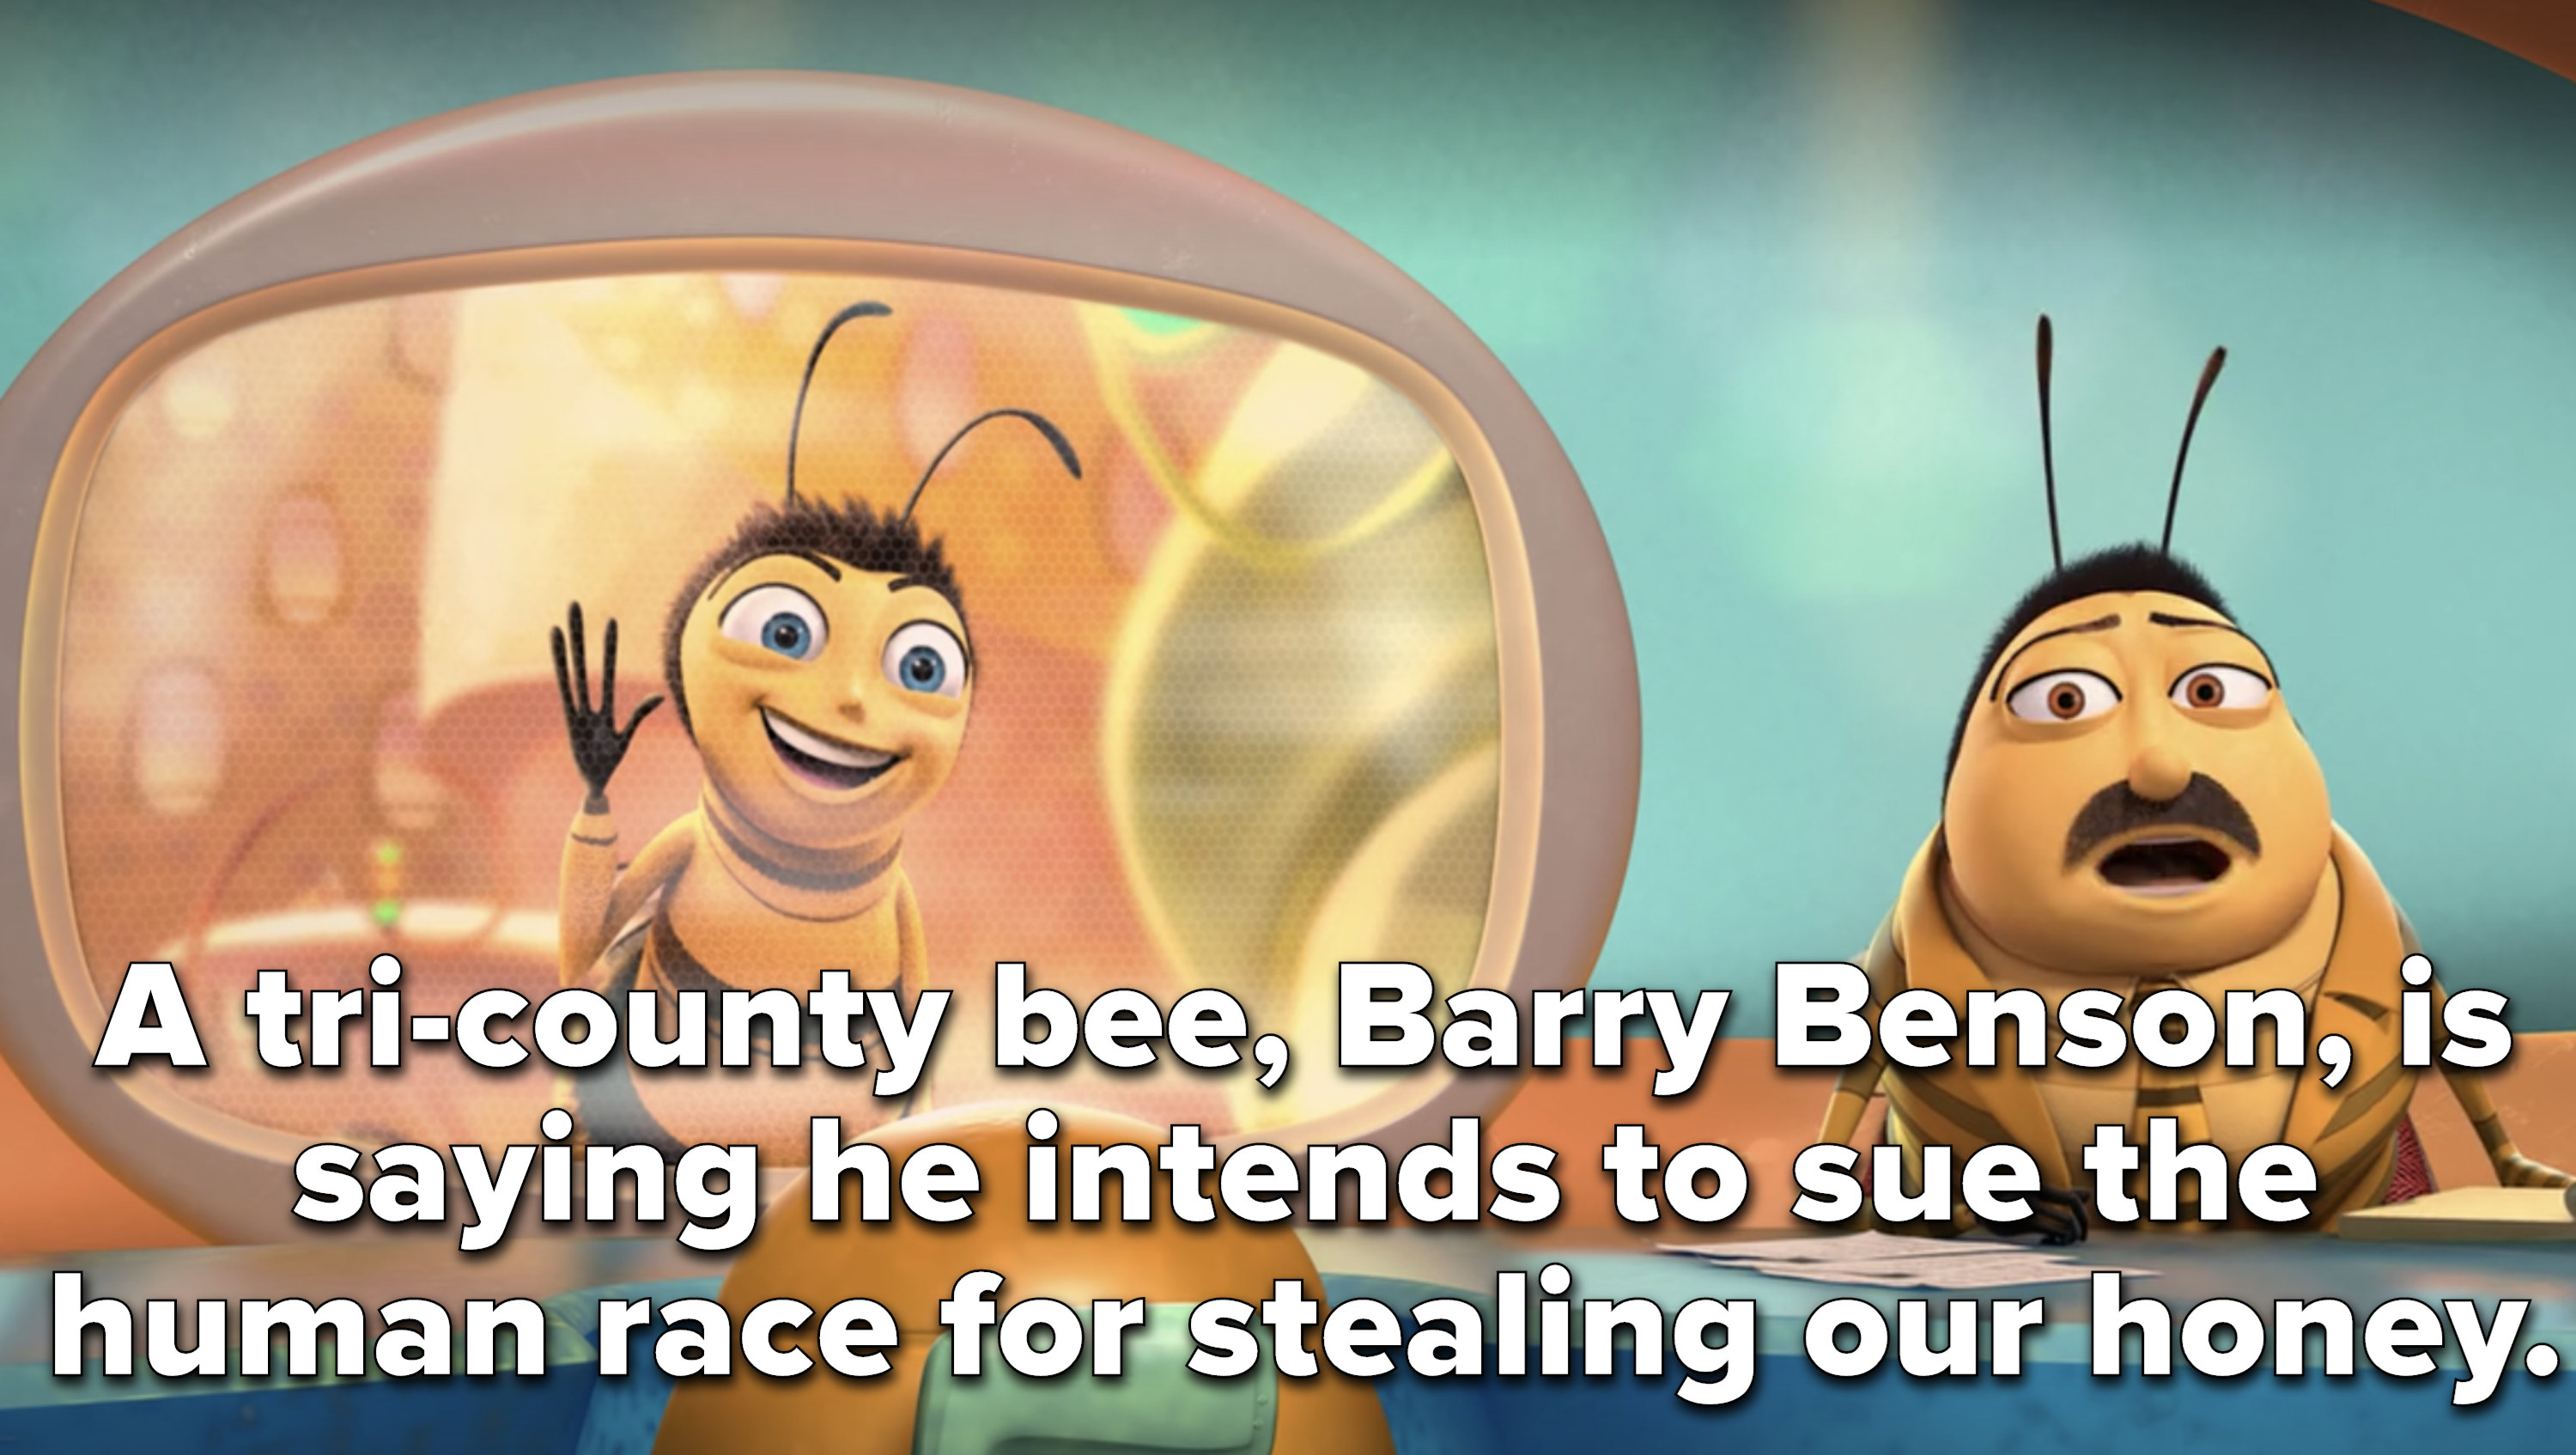 a news reporter says Barry is planning to sue the human race for stealing honey